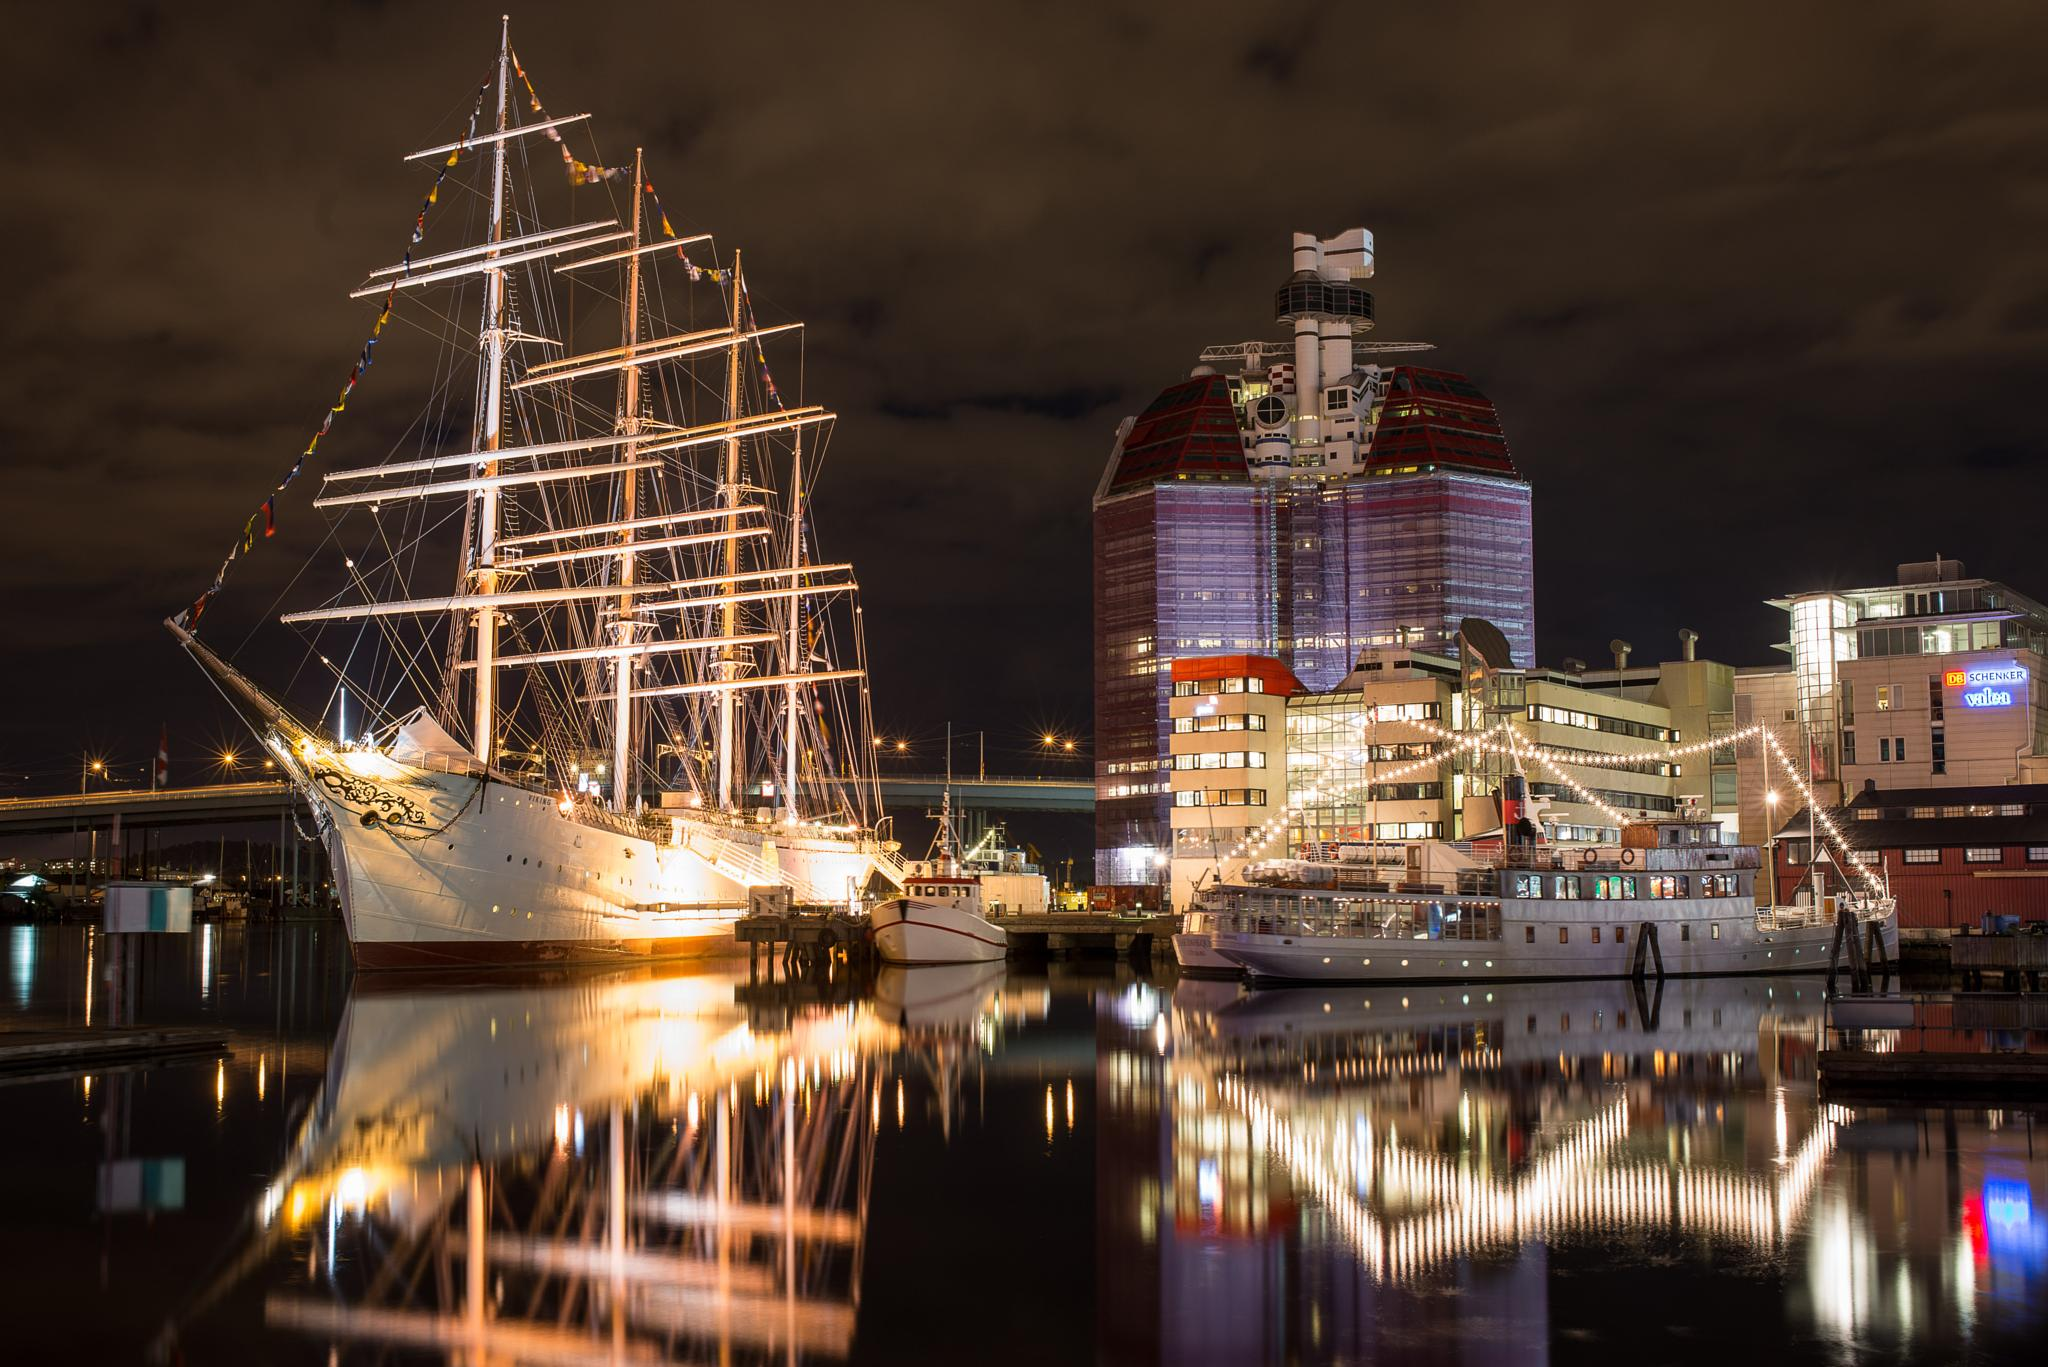 Gothenburg Harbor, Barken viking by Niklas Olausson